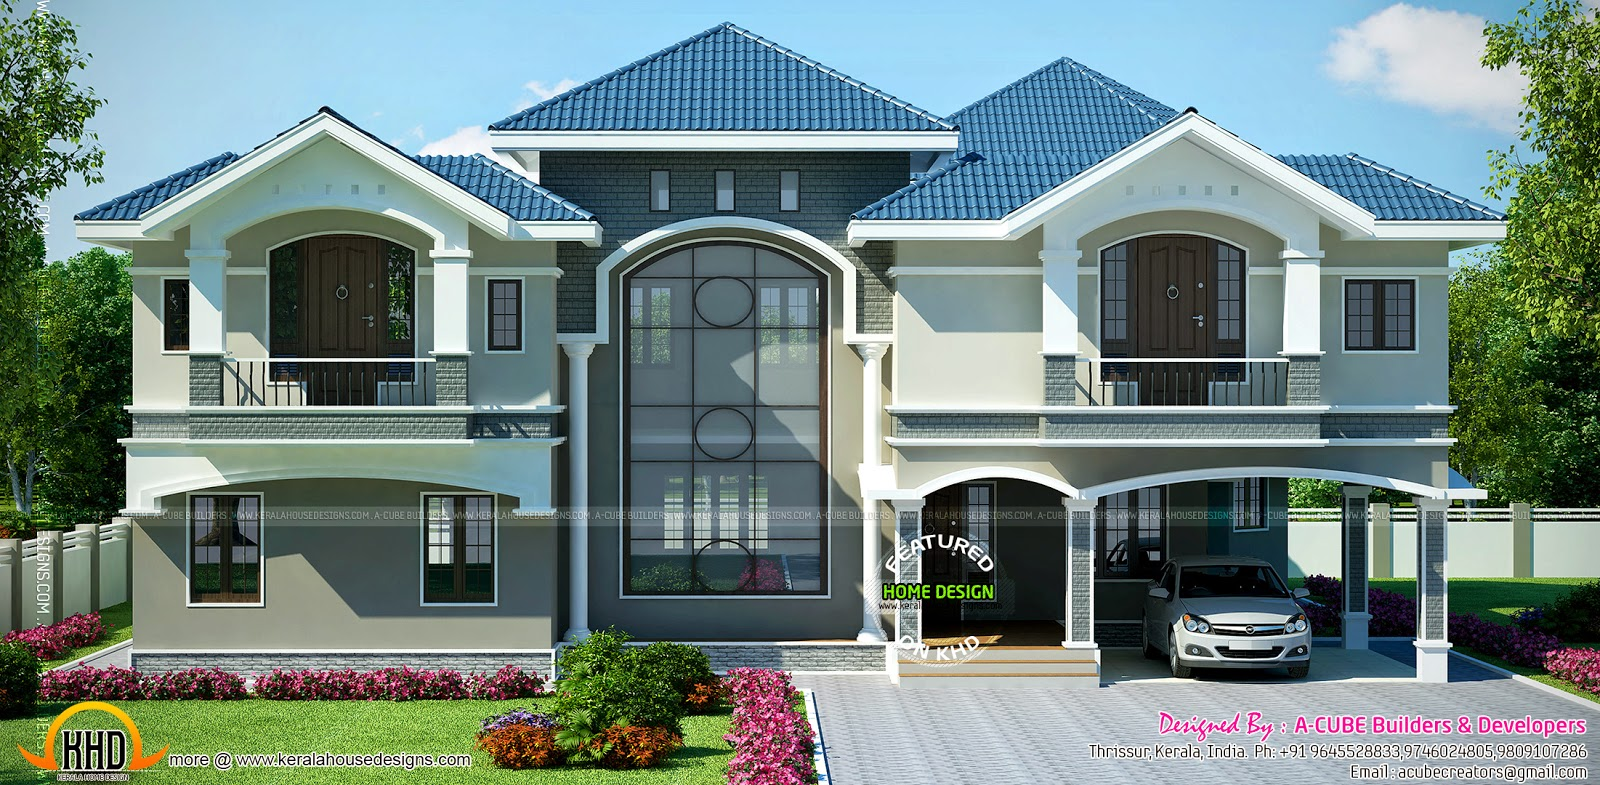 Super luxury house in beautiful style kerala home design and floor plans - Luxury home designs plans ...